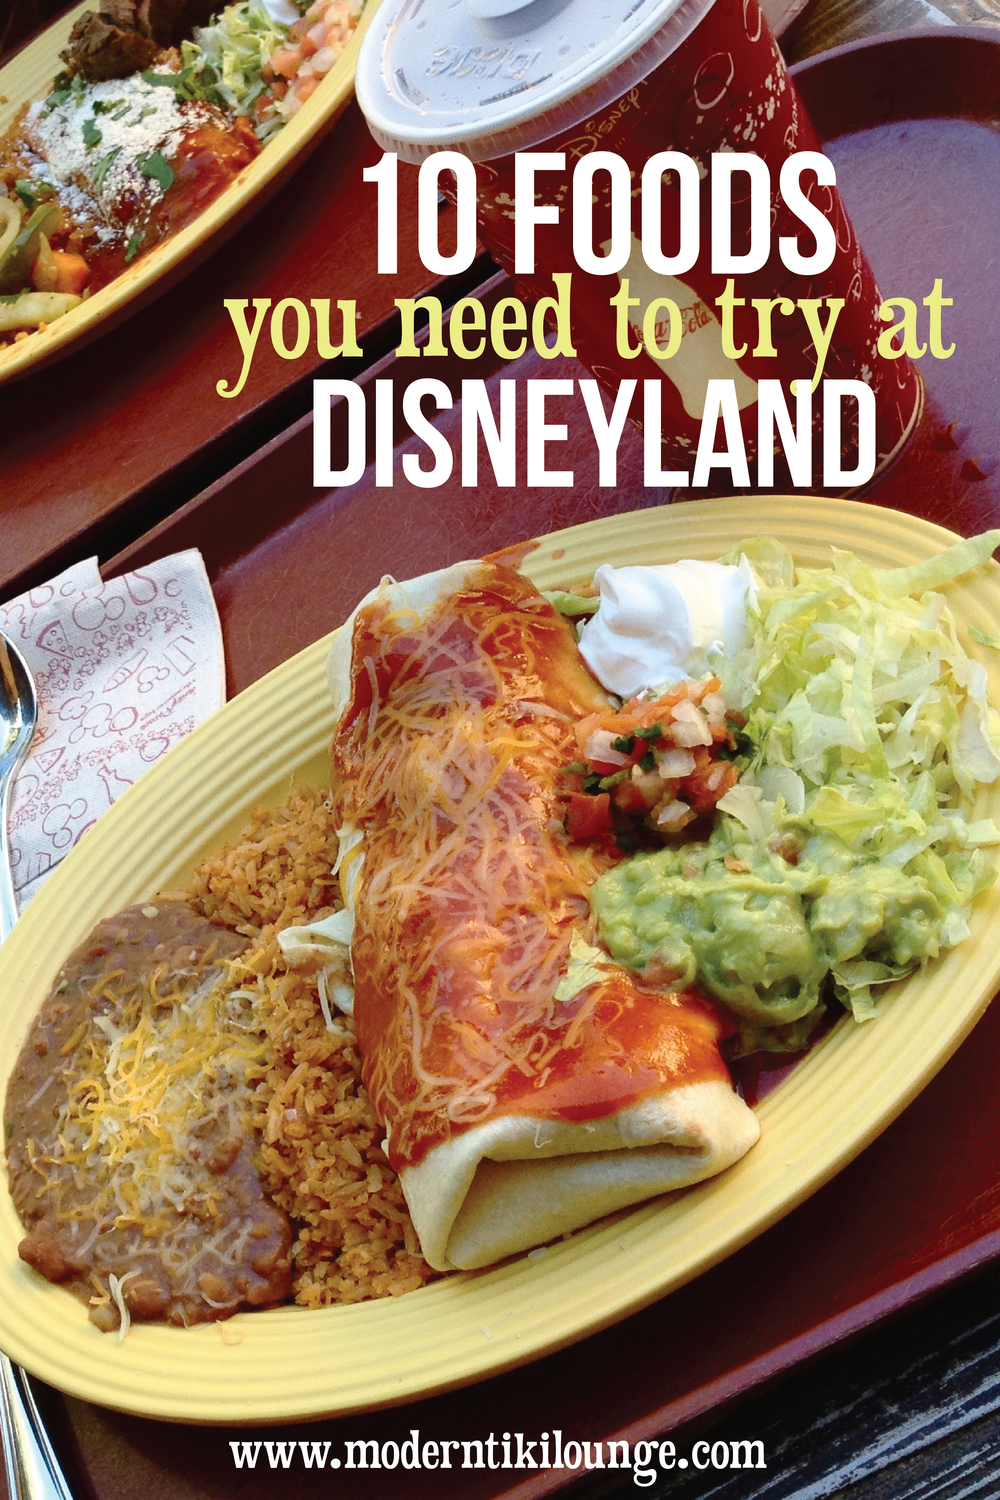 10-foods-try-disneyland.jpg